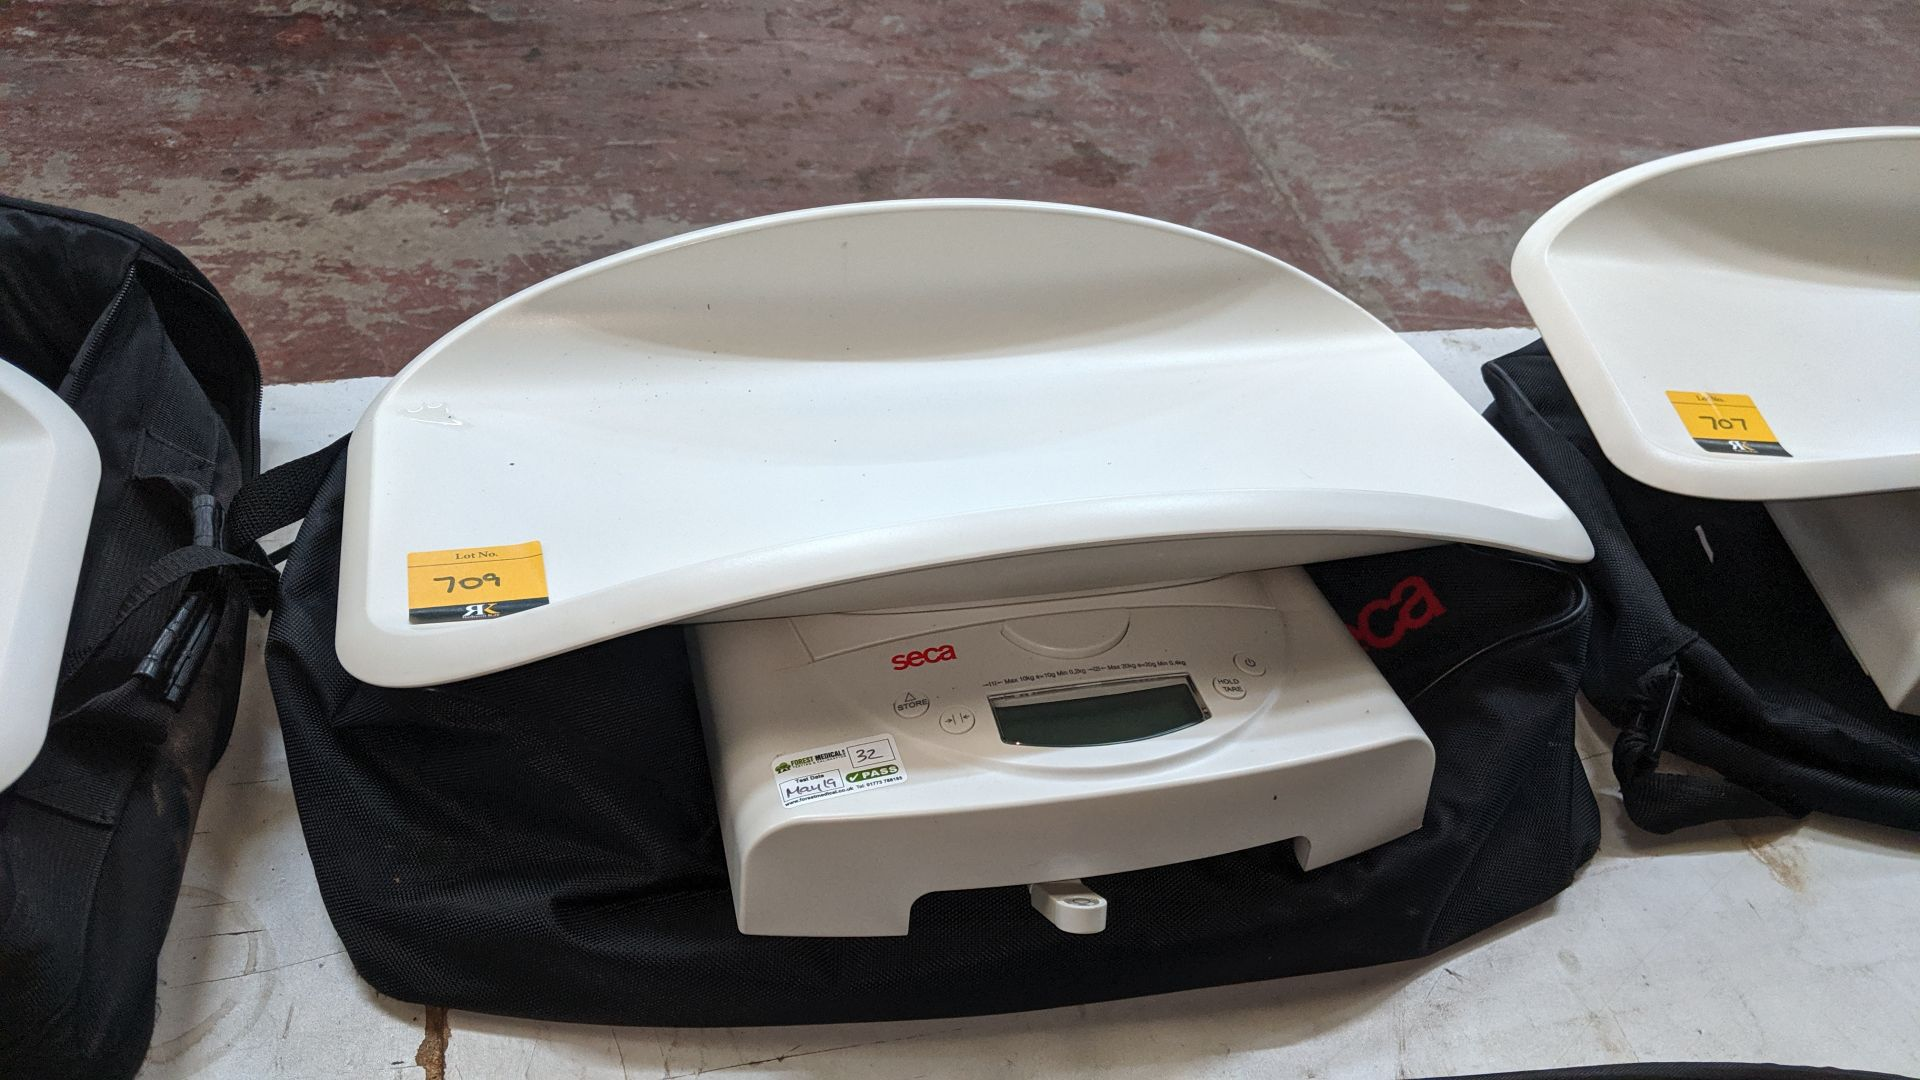 Lot 709 - Seca model 384 baby scales max. capacity 20kg. This is one of a large number of lots used/owned by